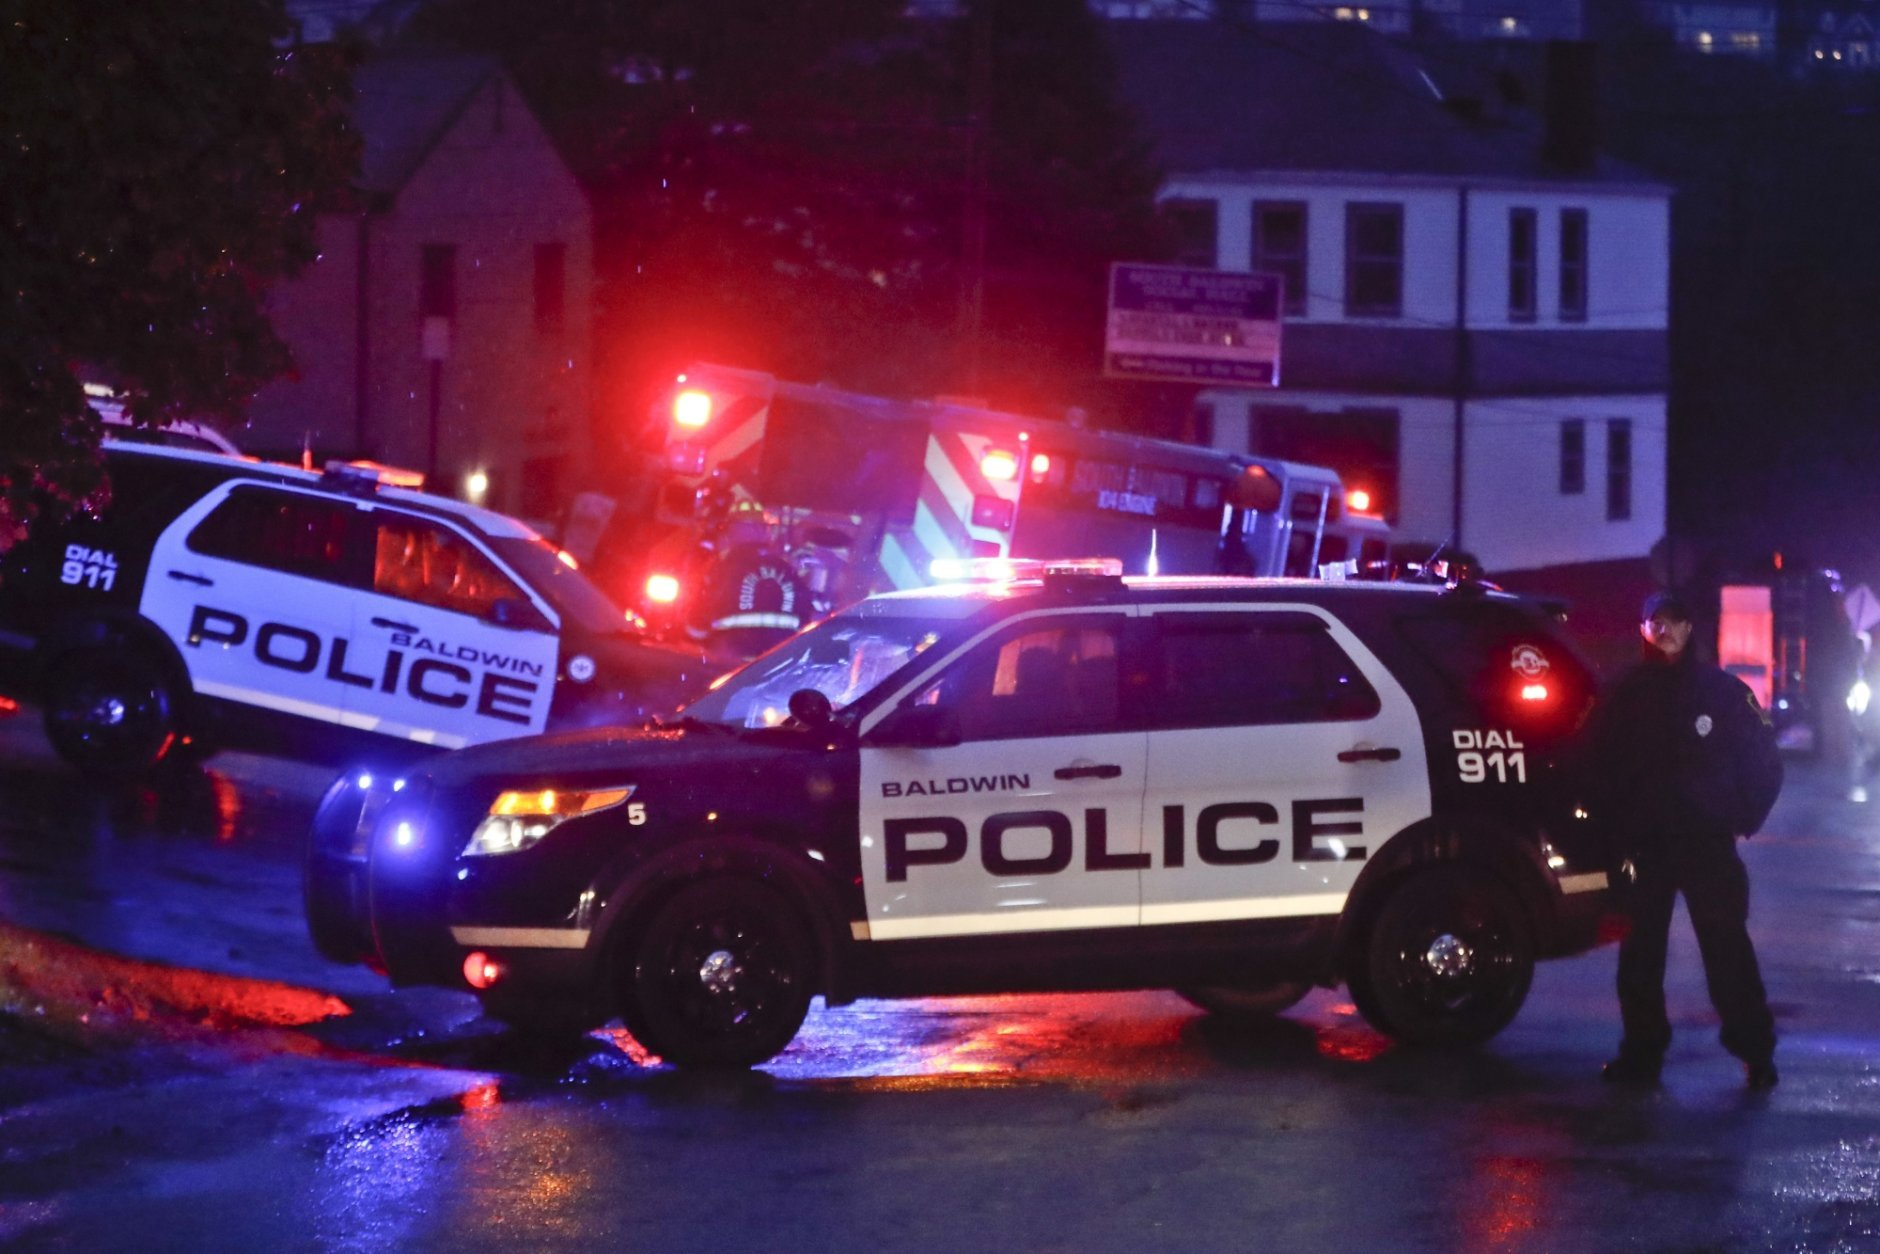 Emergency vehicles block off the area around the McAnulty Acres apartment complex as authorities continue their investigation of a shooting in a Pittsburgh synagogue where multiple people were killed on Saturday, Oct. 27, 2018 in Baldwin, Pa., a suburb south of Pittsburgh. (AP Photo/Keith Srakocic)